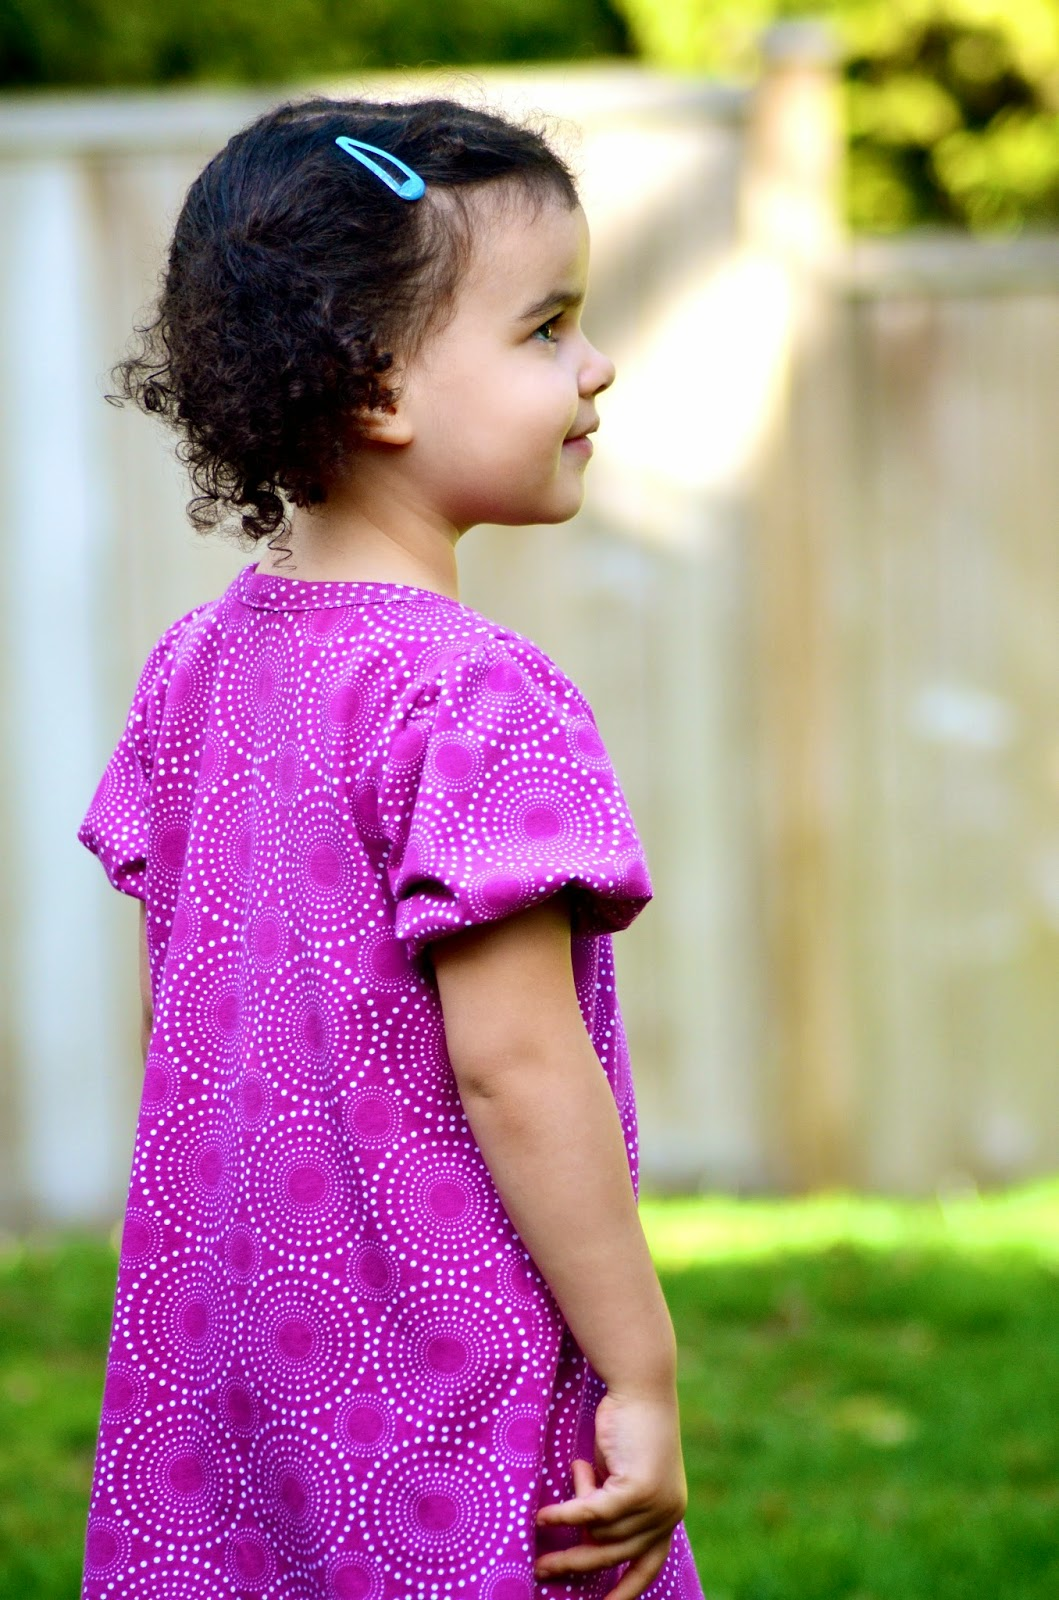 Dress Patterns for Girls, Easy Dress Patterns, DIY Dress Patterns, DIY Dress Patterns for Girls, Dress Patterns, Sewing Projects, Sewing Tips and Tricks, Popular Pin